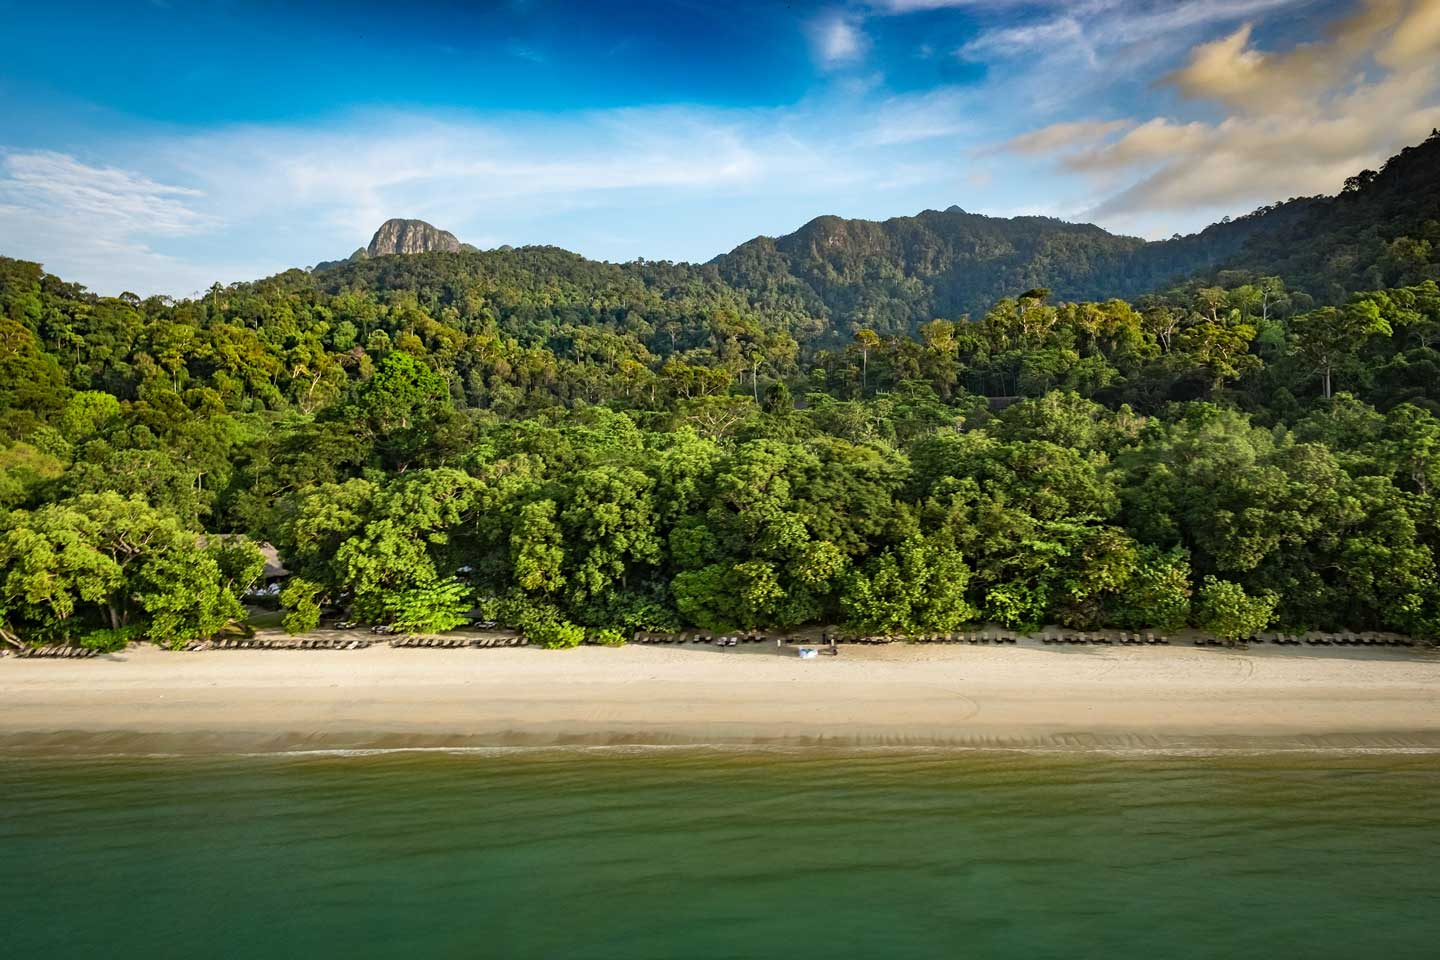 The shore of Datai Bay on Langkawi Island